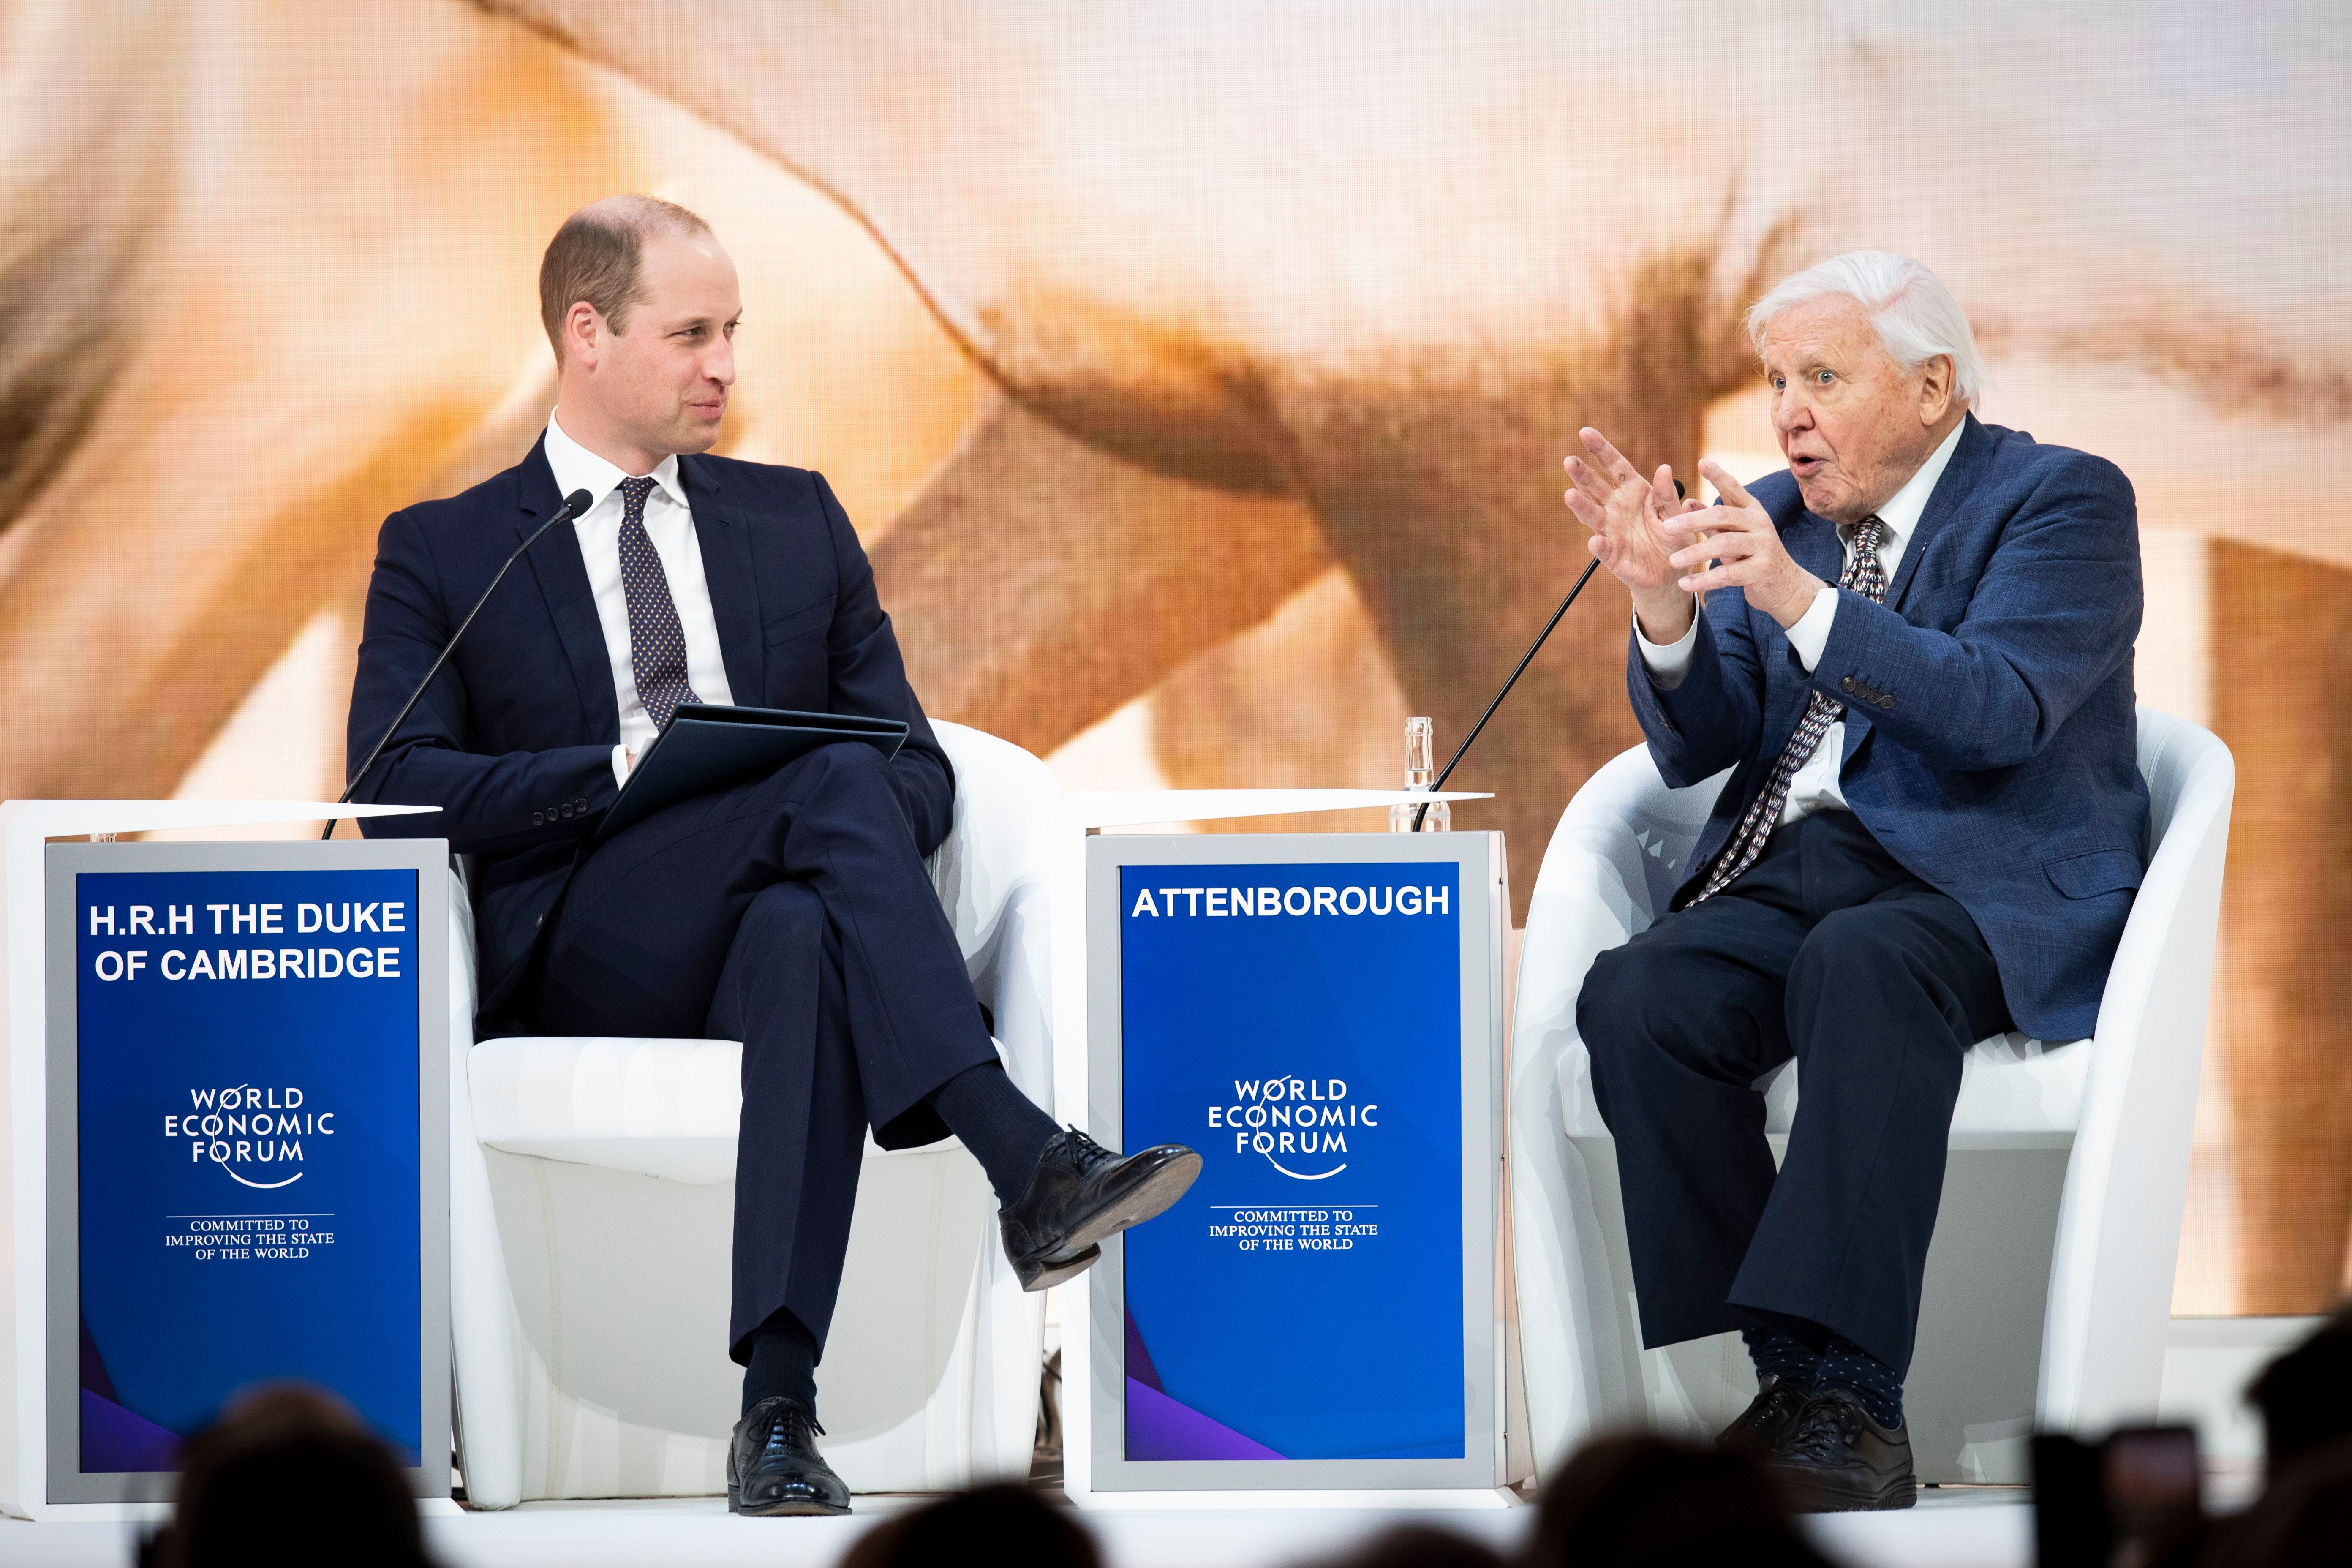 Prince William talks with British broadcaster and natural historian, Sir David Attenborough, during a session at the 49th Annual Meeting of the World Economic Forum in Davos